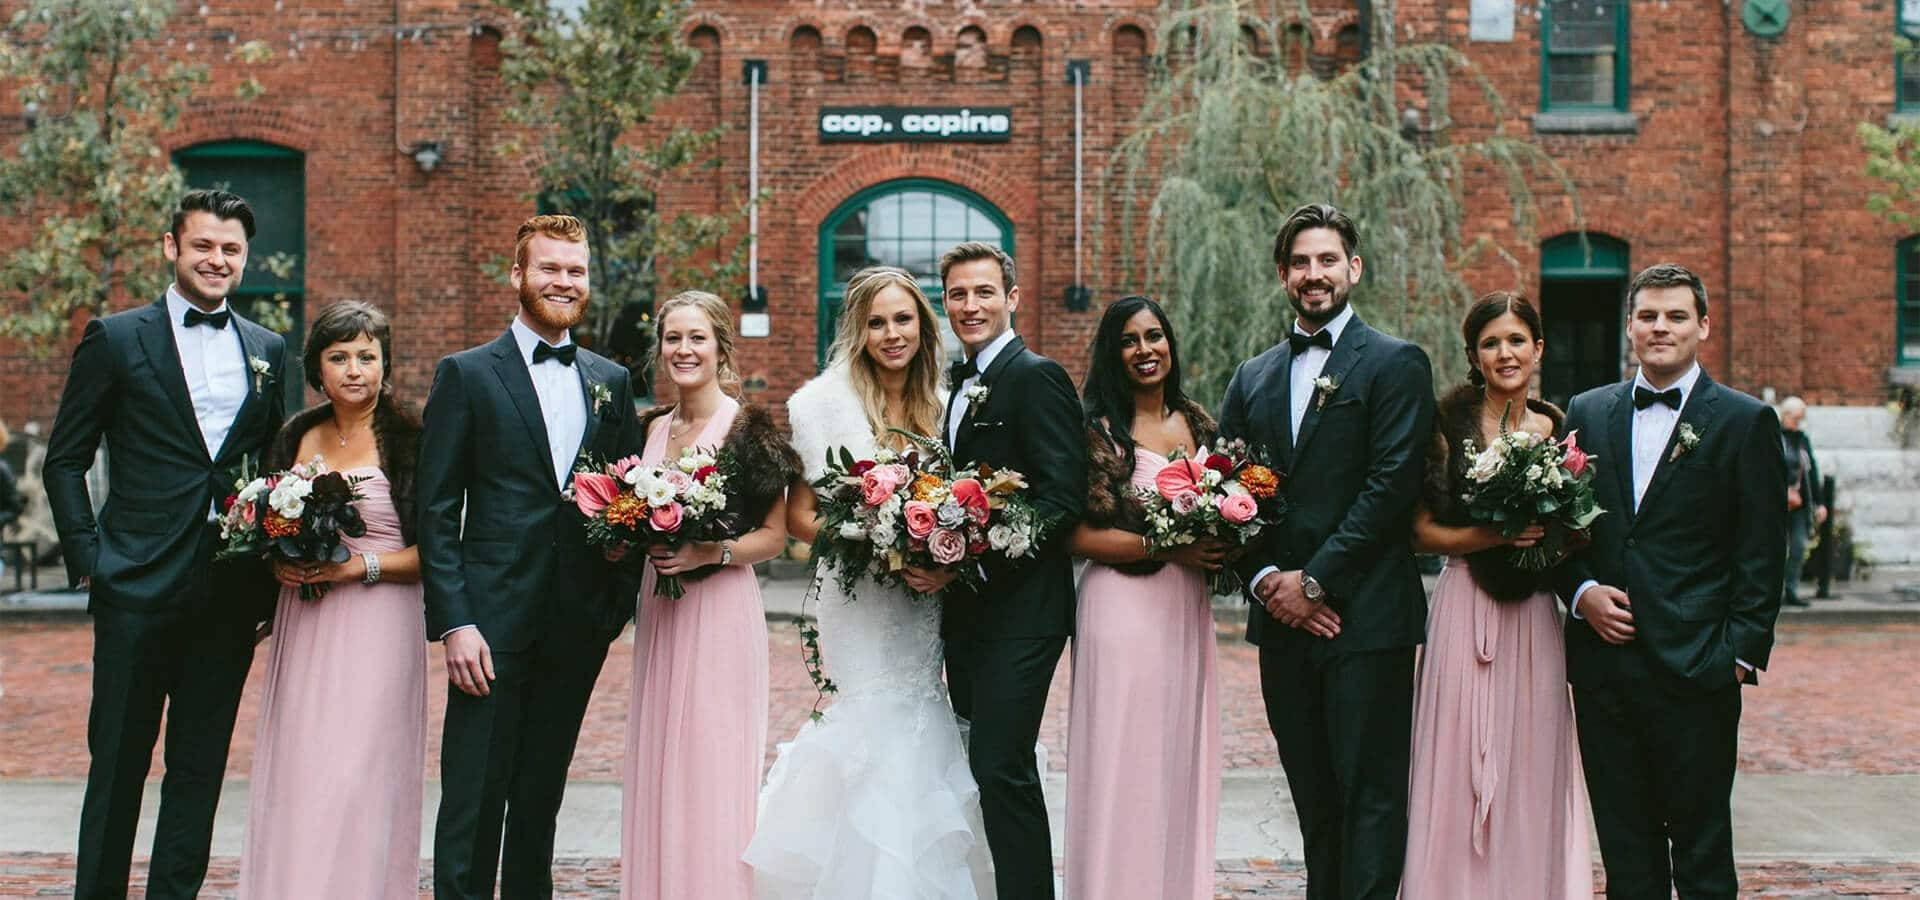 Hero image for Robyn and Mike's Ultra Romantic Wedding at The Distillery District – Loft